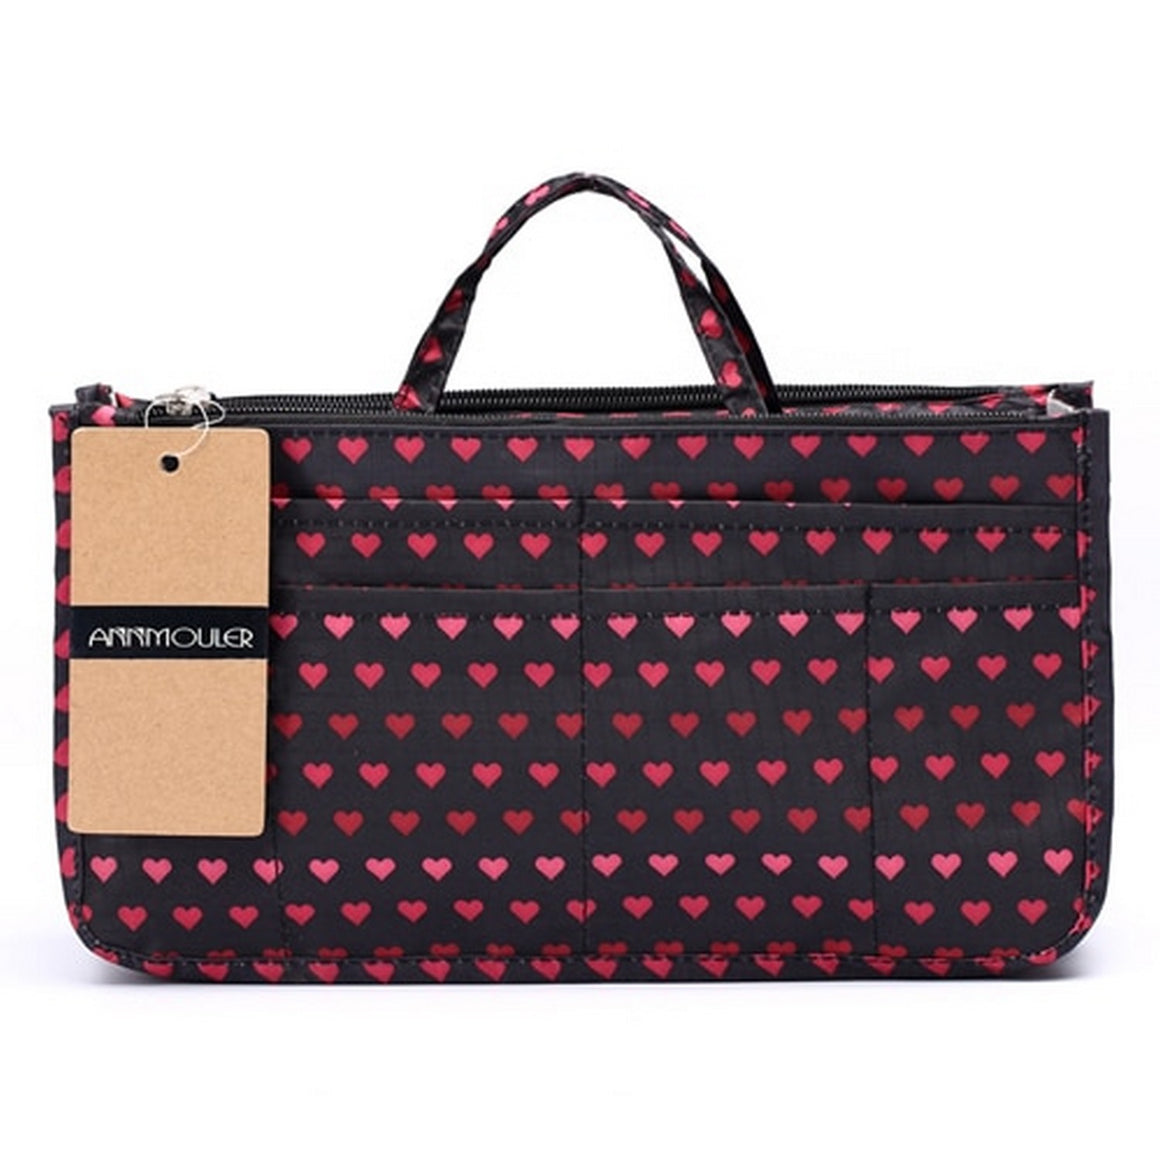 Annmouler Makeup Bag Necessarie Organizer 10 Colors Trip Beauty Women Travel Handbags Toiletry Bag Waterproof Make Up Pouch